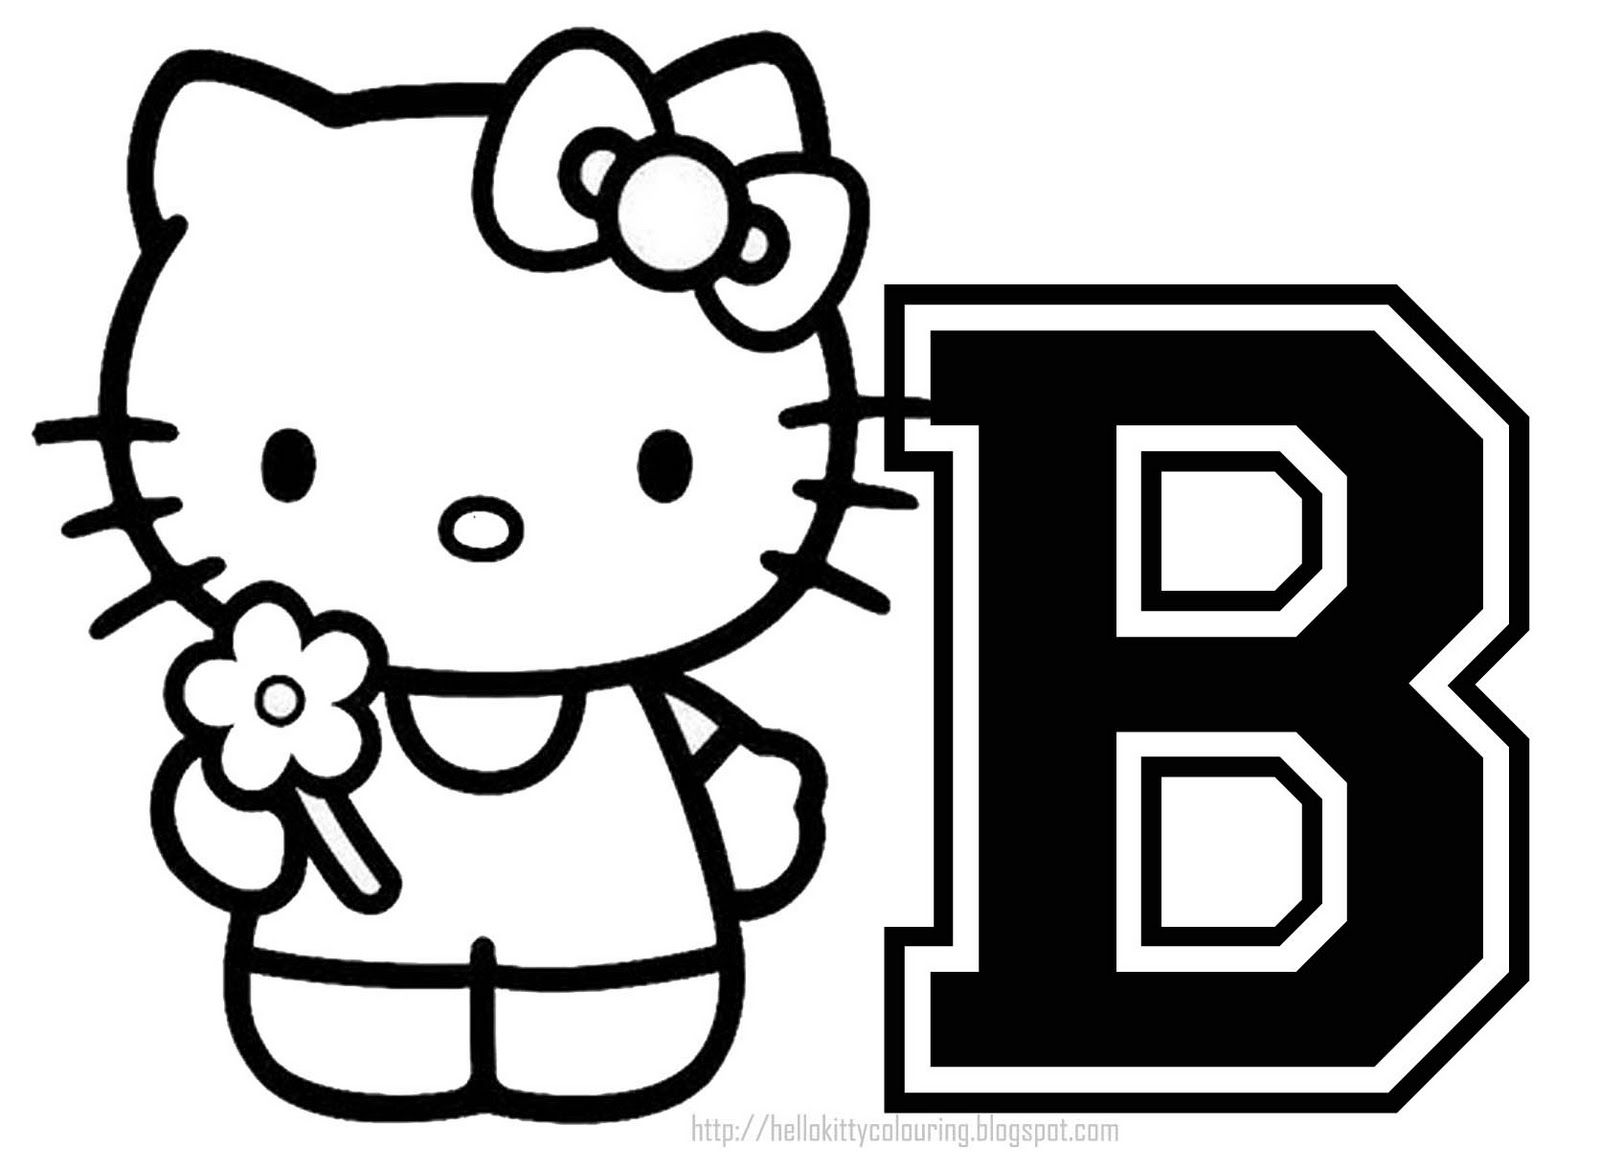 Hello Kitty Nerd Coloring Pages Printable : Black and white hello kitty nerd coloring pages